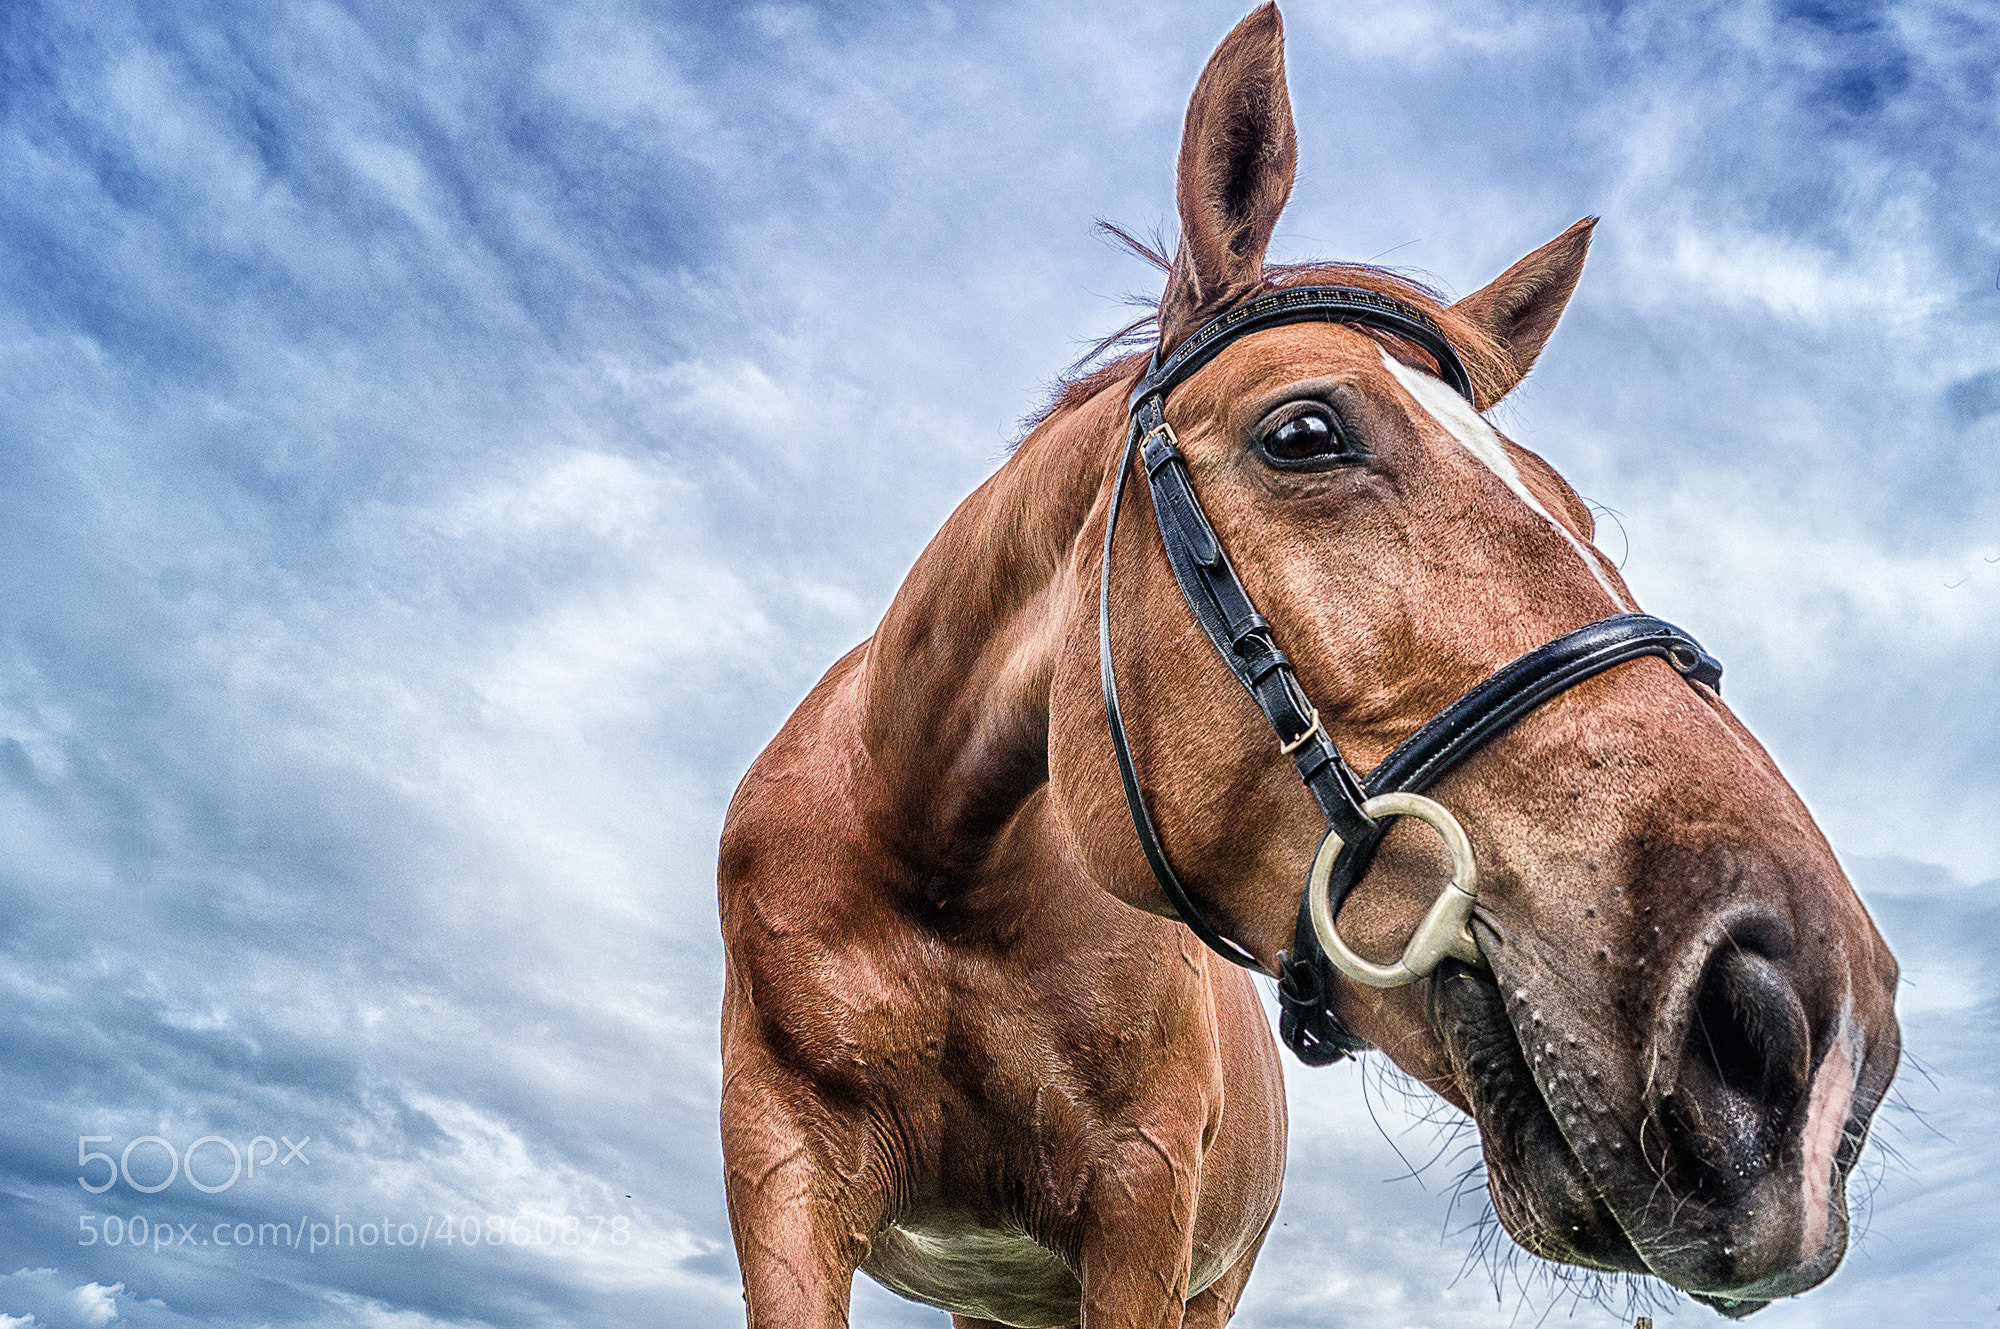 Photograph a Horse is a Horse is a Horse! by Frank Klix on 500px